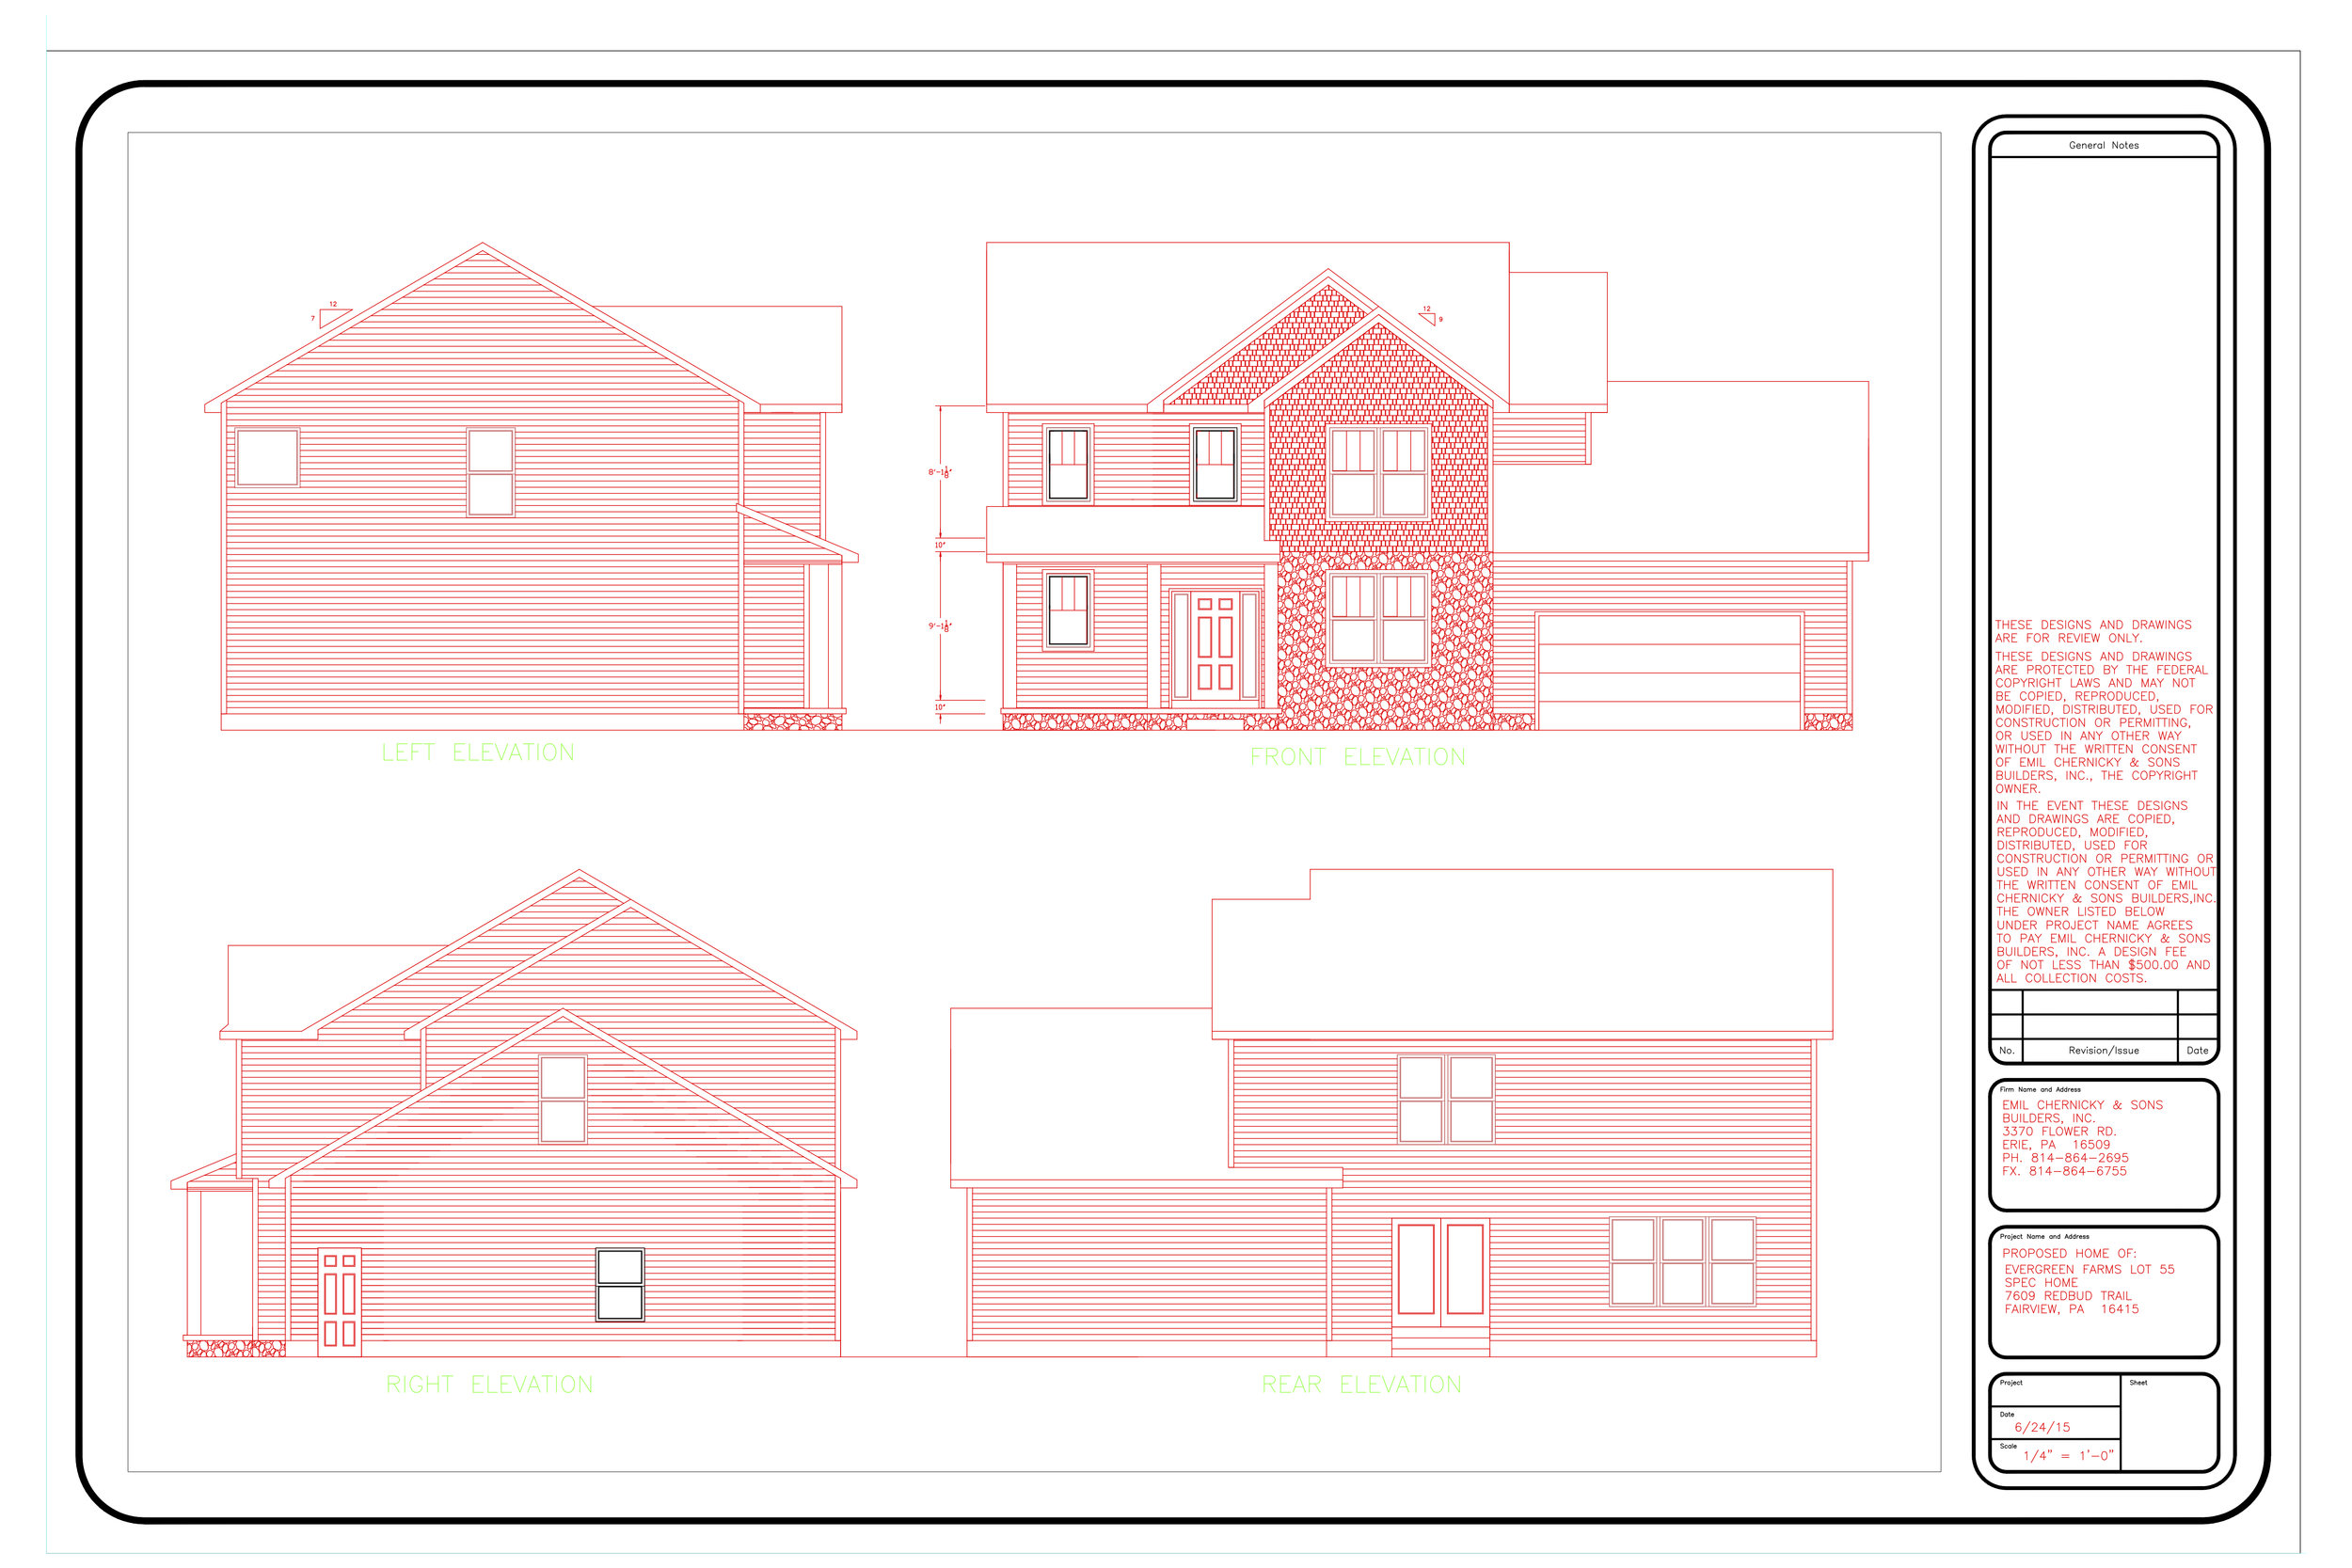 Lot 55 Coppertina V  ELEVATIONS-Layout1.jpg